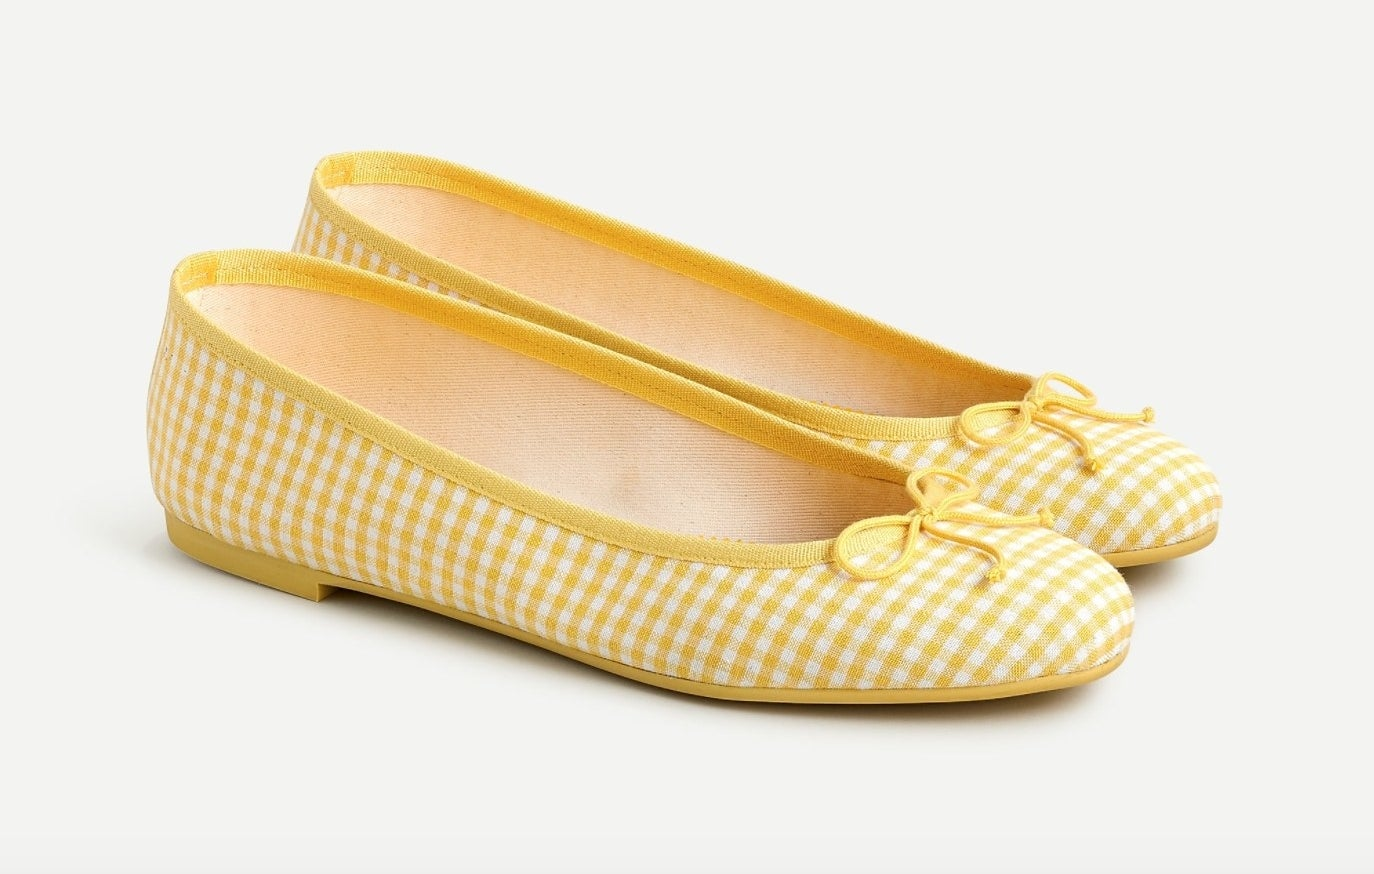 The ballet flats in yellow/ivory